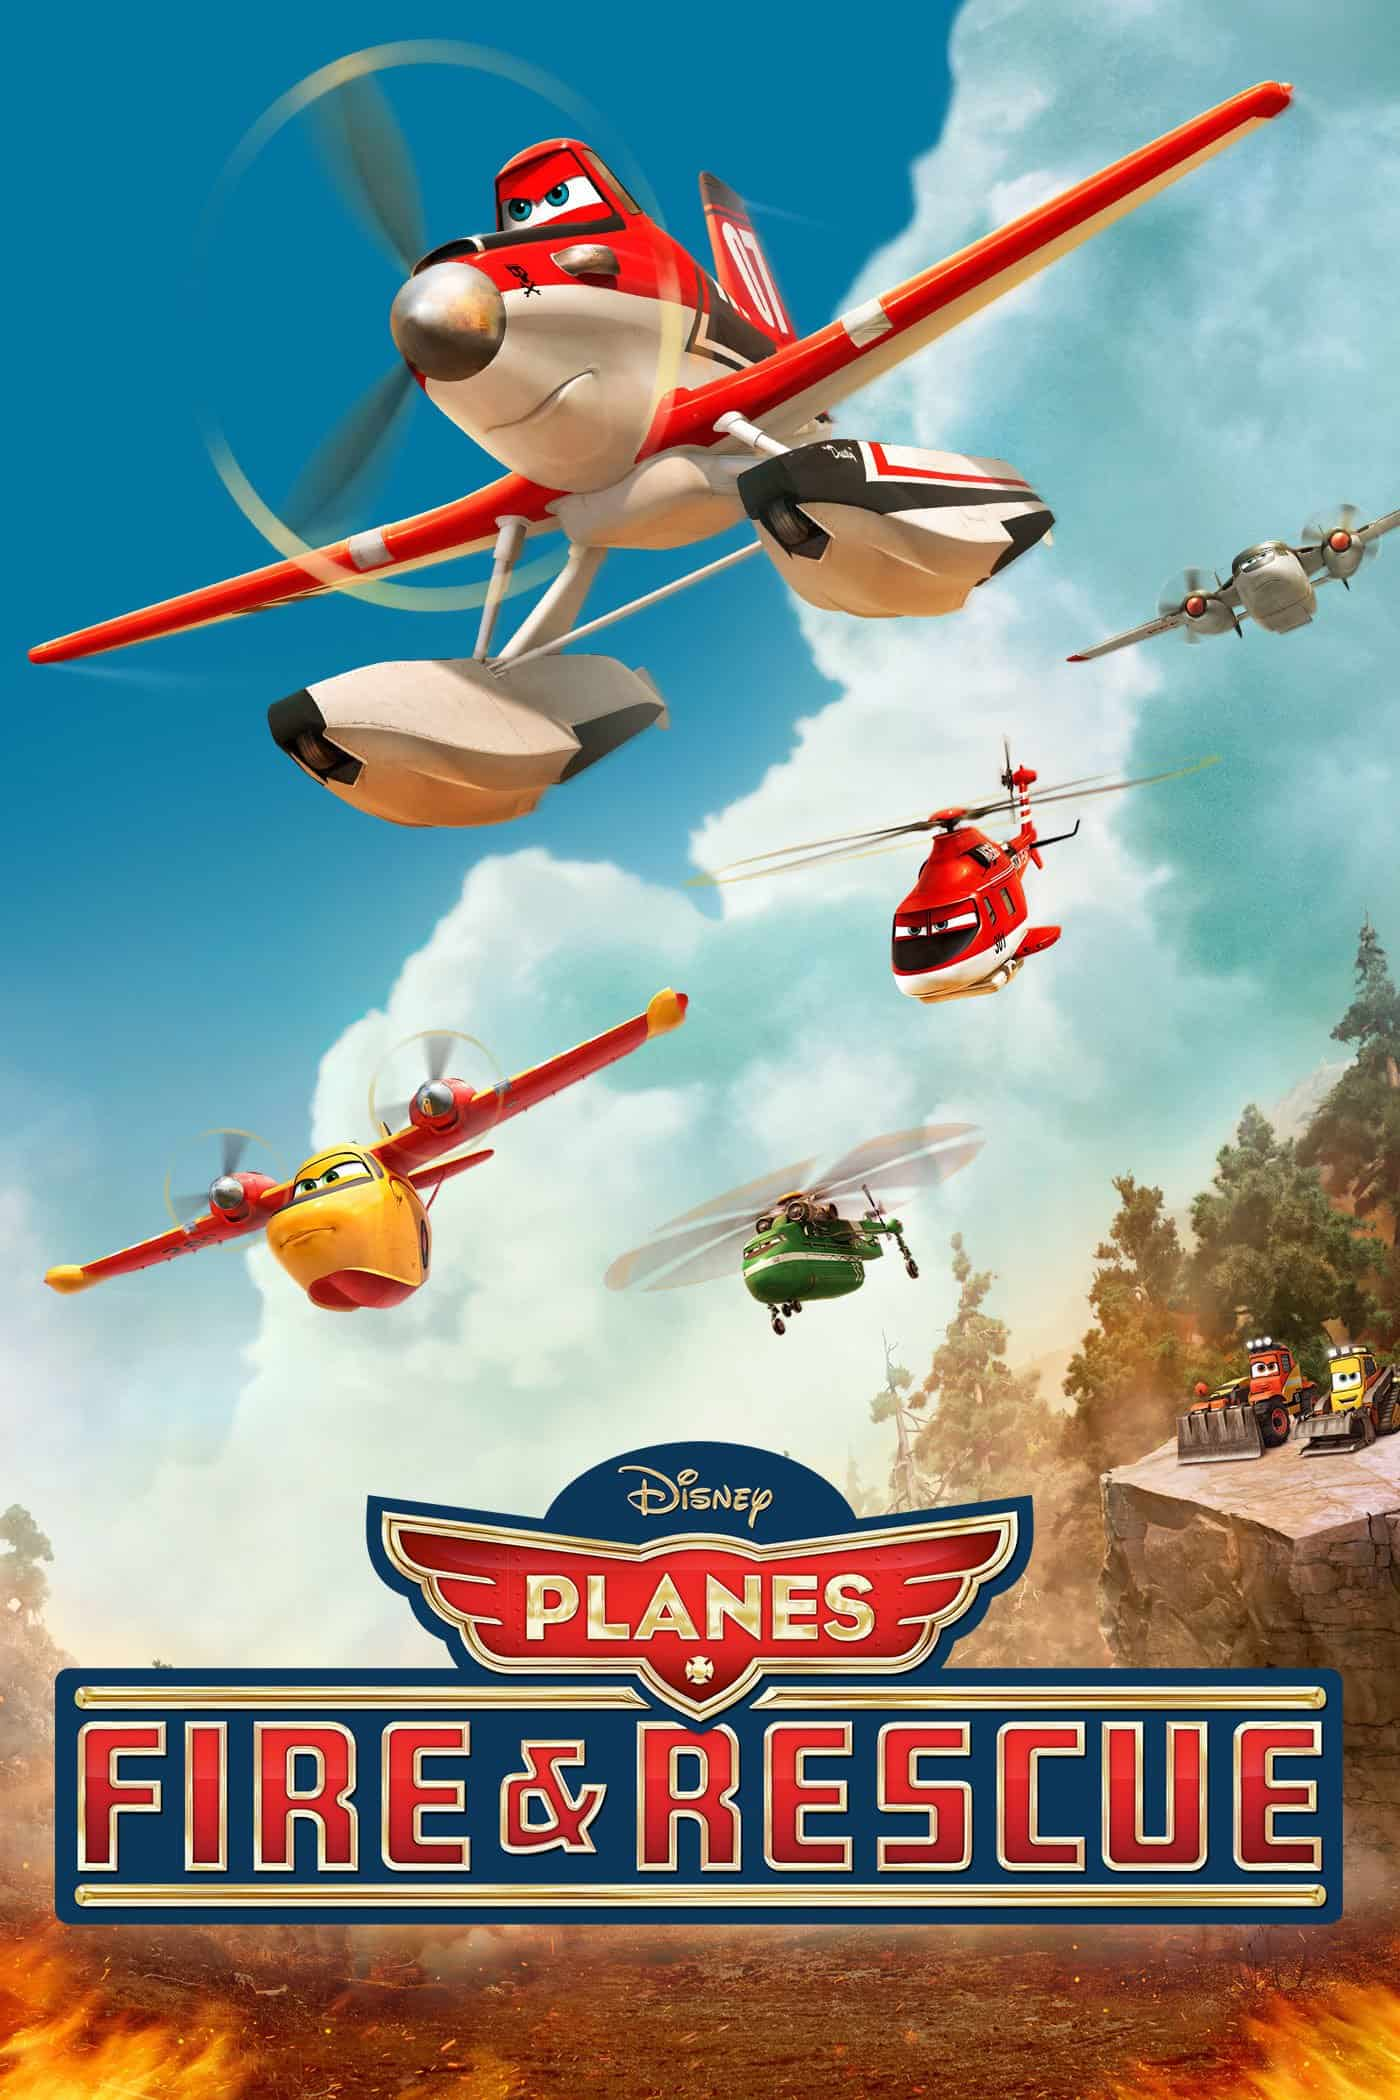 Planes: Fire and Rescue, 2014